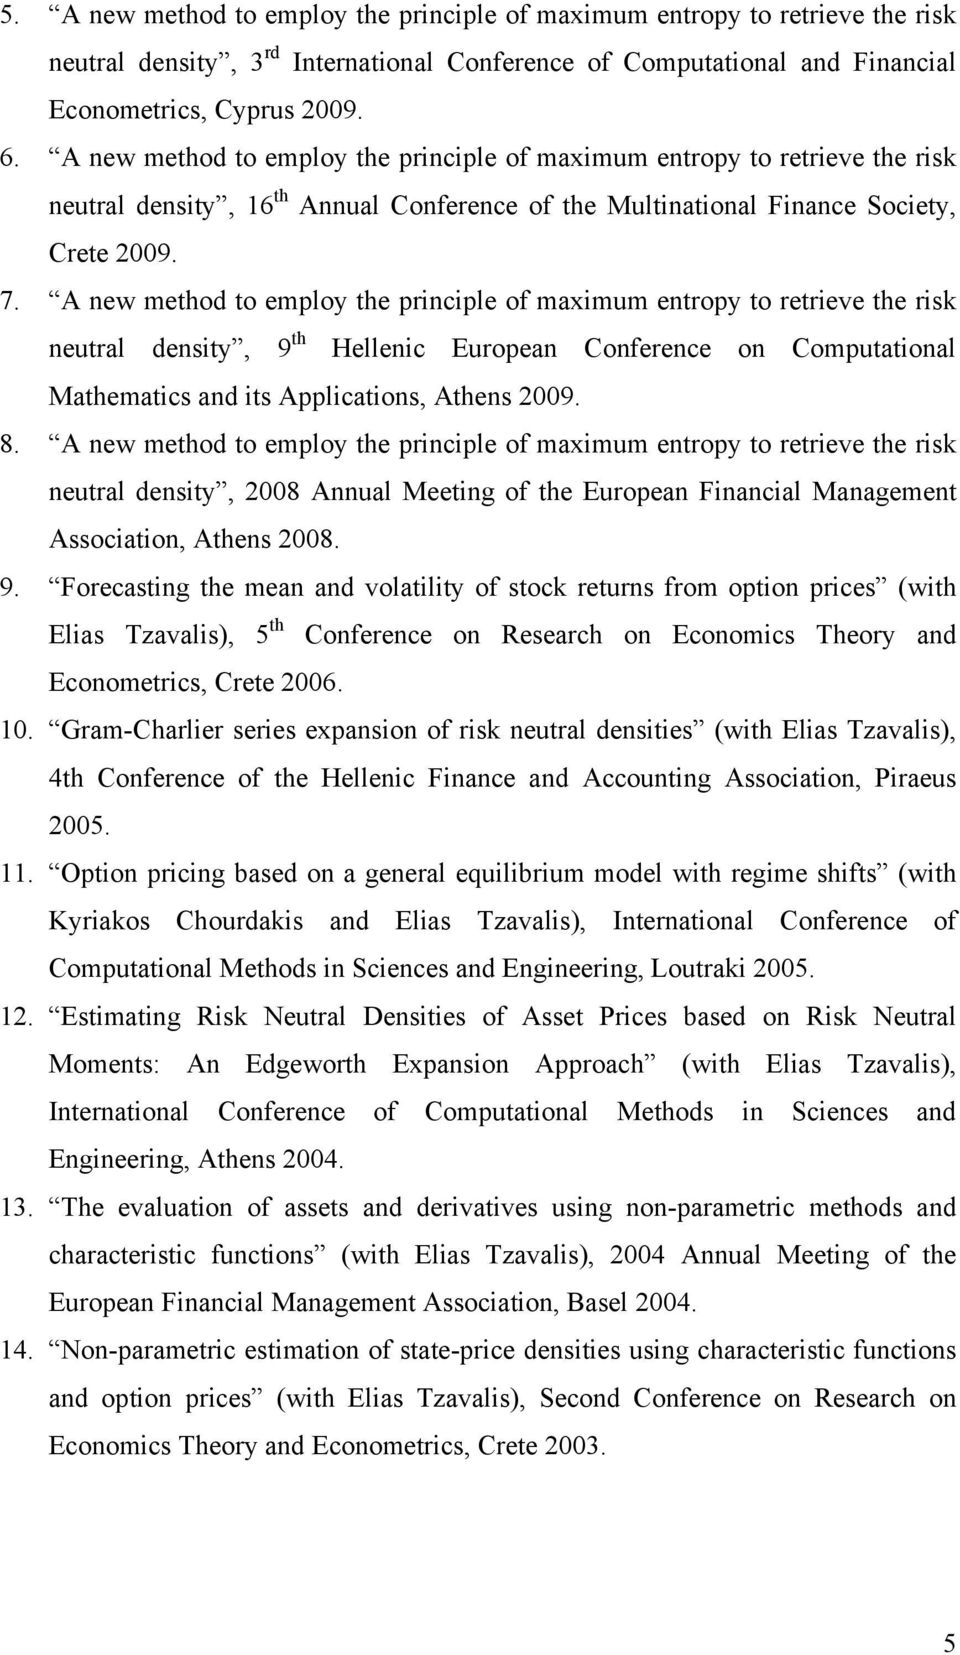 A new method to employ the principle of maximum entropy to retrieve the risk neutral density, 9 th Hellenic European Conference on Computational Mathematics and its Applications, Athens 2009. 8.